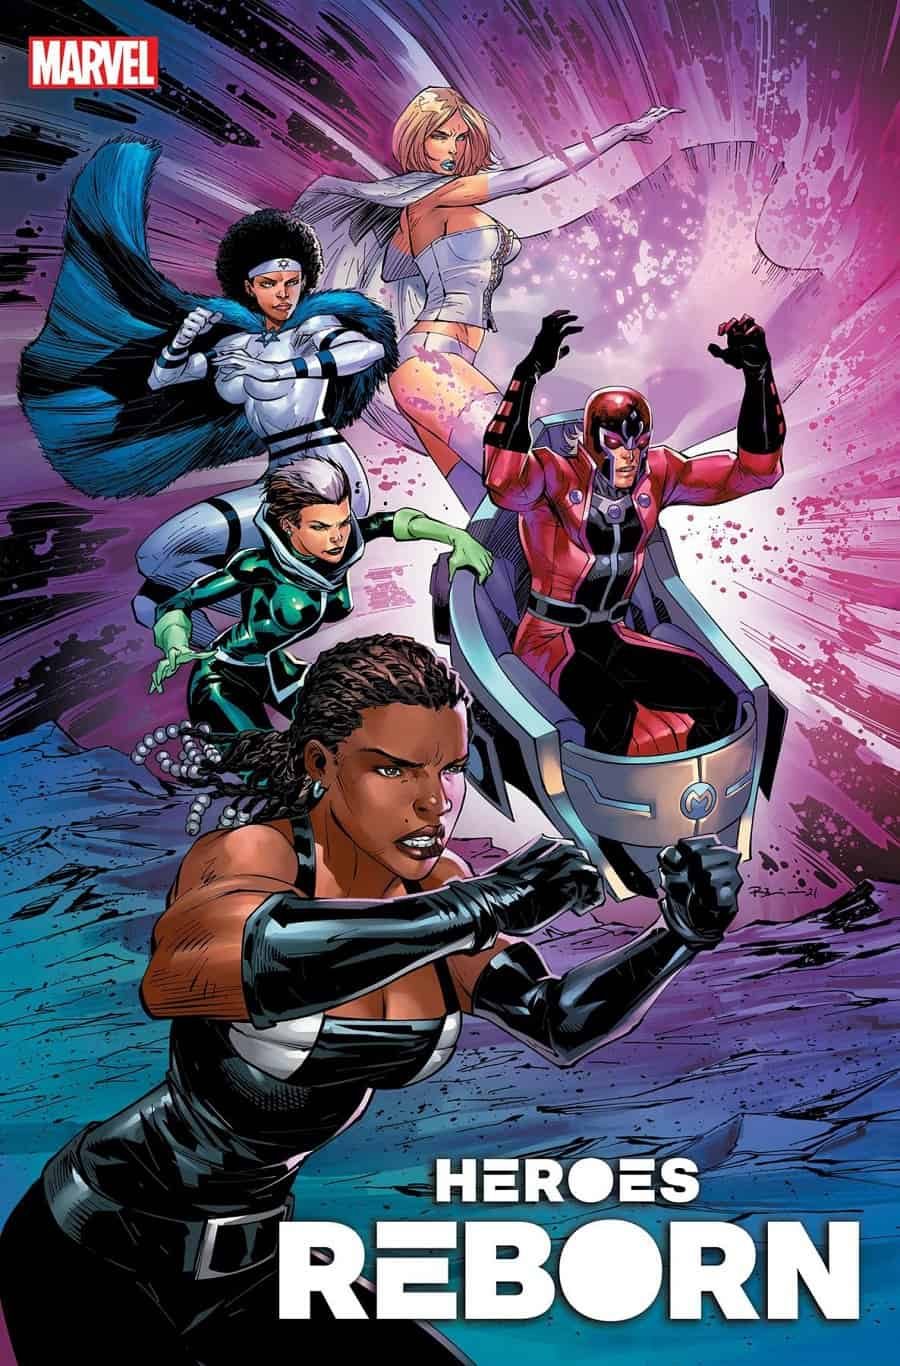 Is There A Reading Order For Heroes Reborn? 1